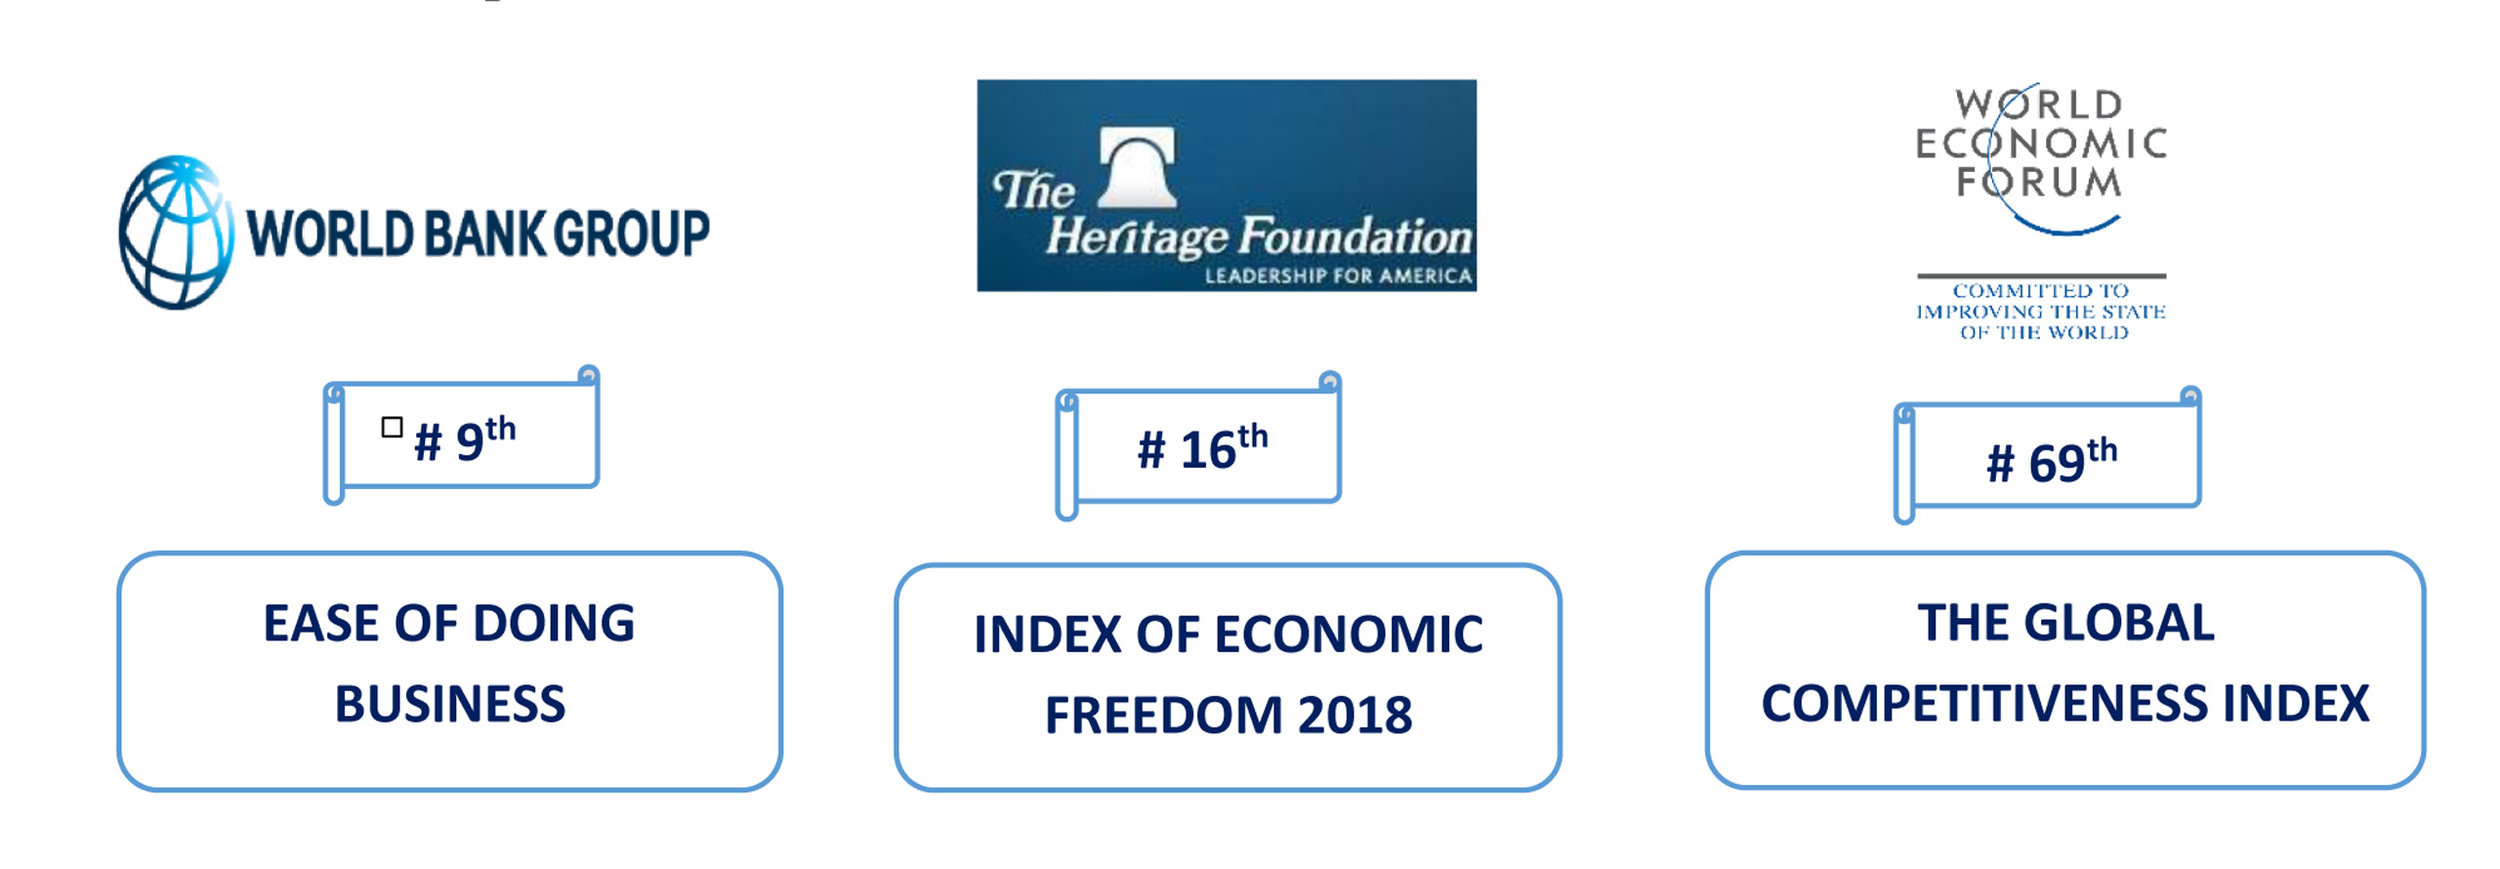 "·       World Bank's ""Doing Business 2018"" placed Georgia at 9th position in ""EASE OF DOING BUSINESS"" (out of 190 countries). Improvement from 16th place.    ·       Heritage Foundation placed Georgia at 16th place in ""Index of Economic Freedom 2018"" (out of 180 countries).    ·       World Economic Forum placed Georgia at 41st place in ""The Enabling Trade Index 2016"" among 136 countries and 67th place in ""The Global Competitiveness Index 2017–2018"" among 137 countries."